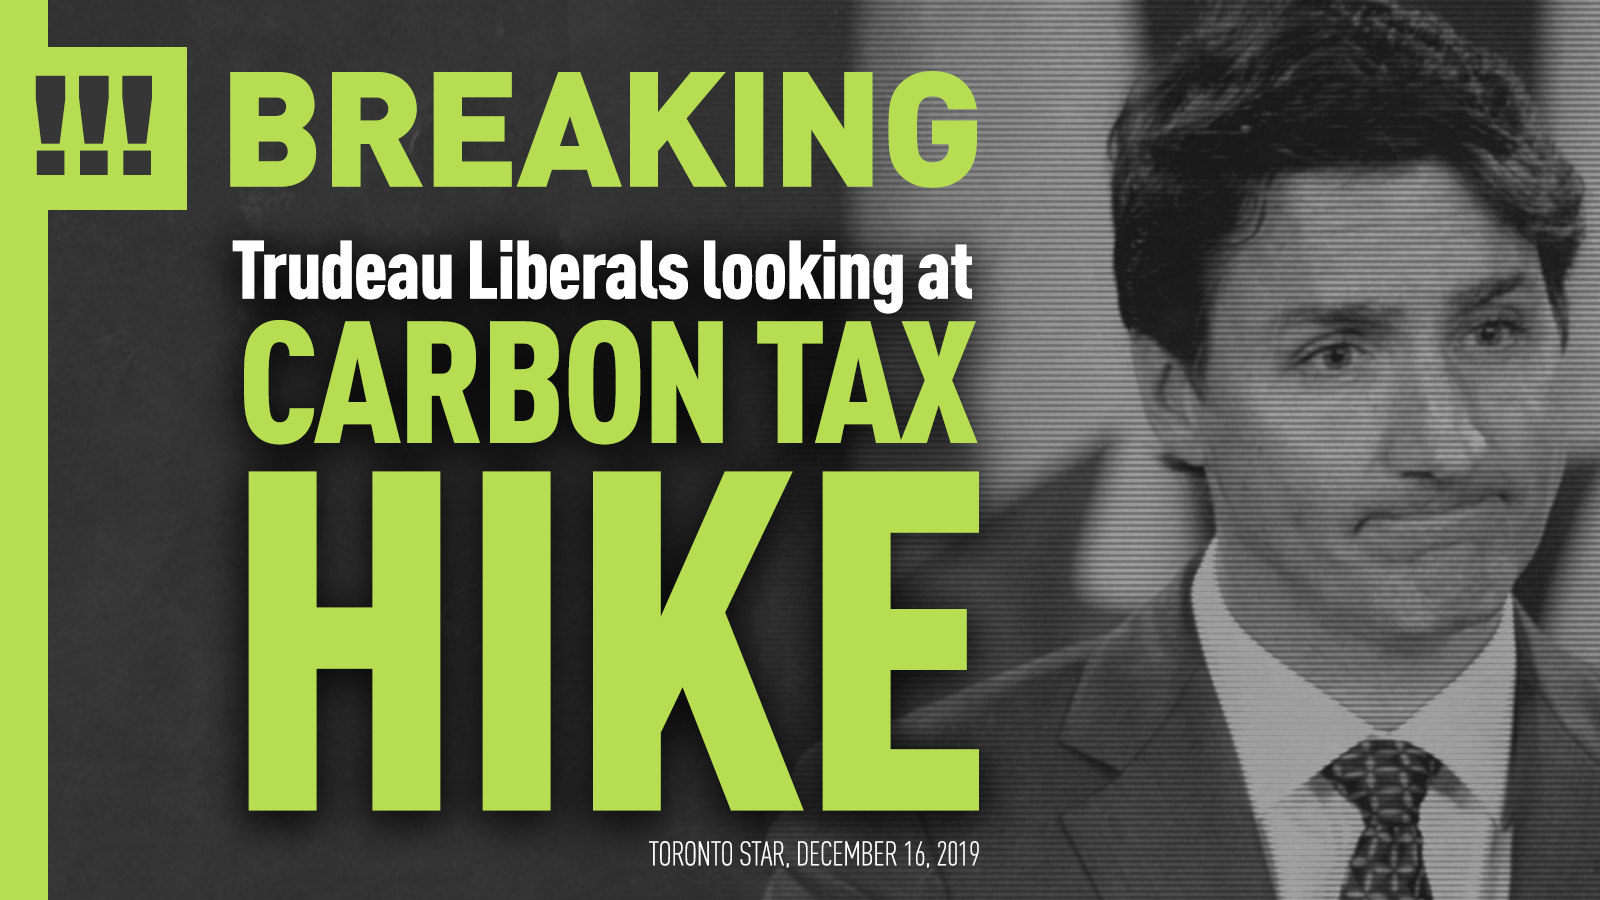 WARKENTIN'S STATEMENT ON THE FEDERAL CARBON TAX BEING IMPOSED ON ALBERTANS